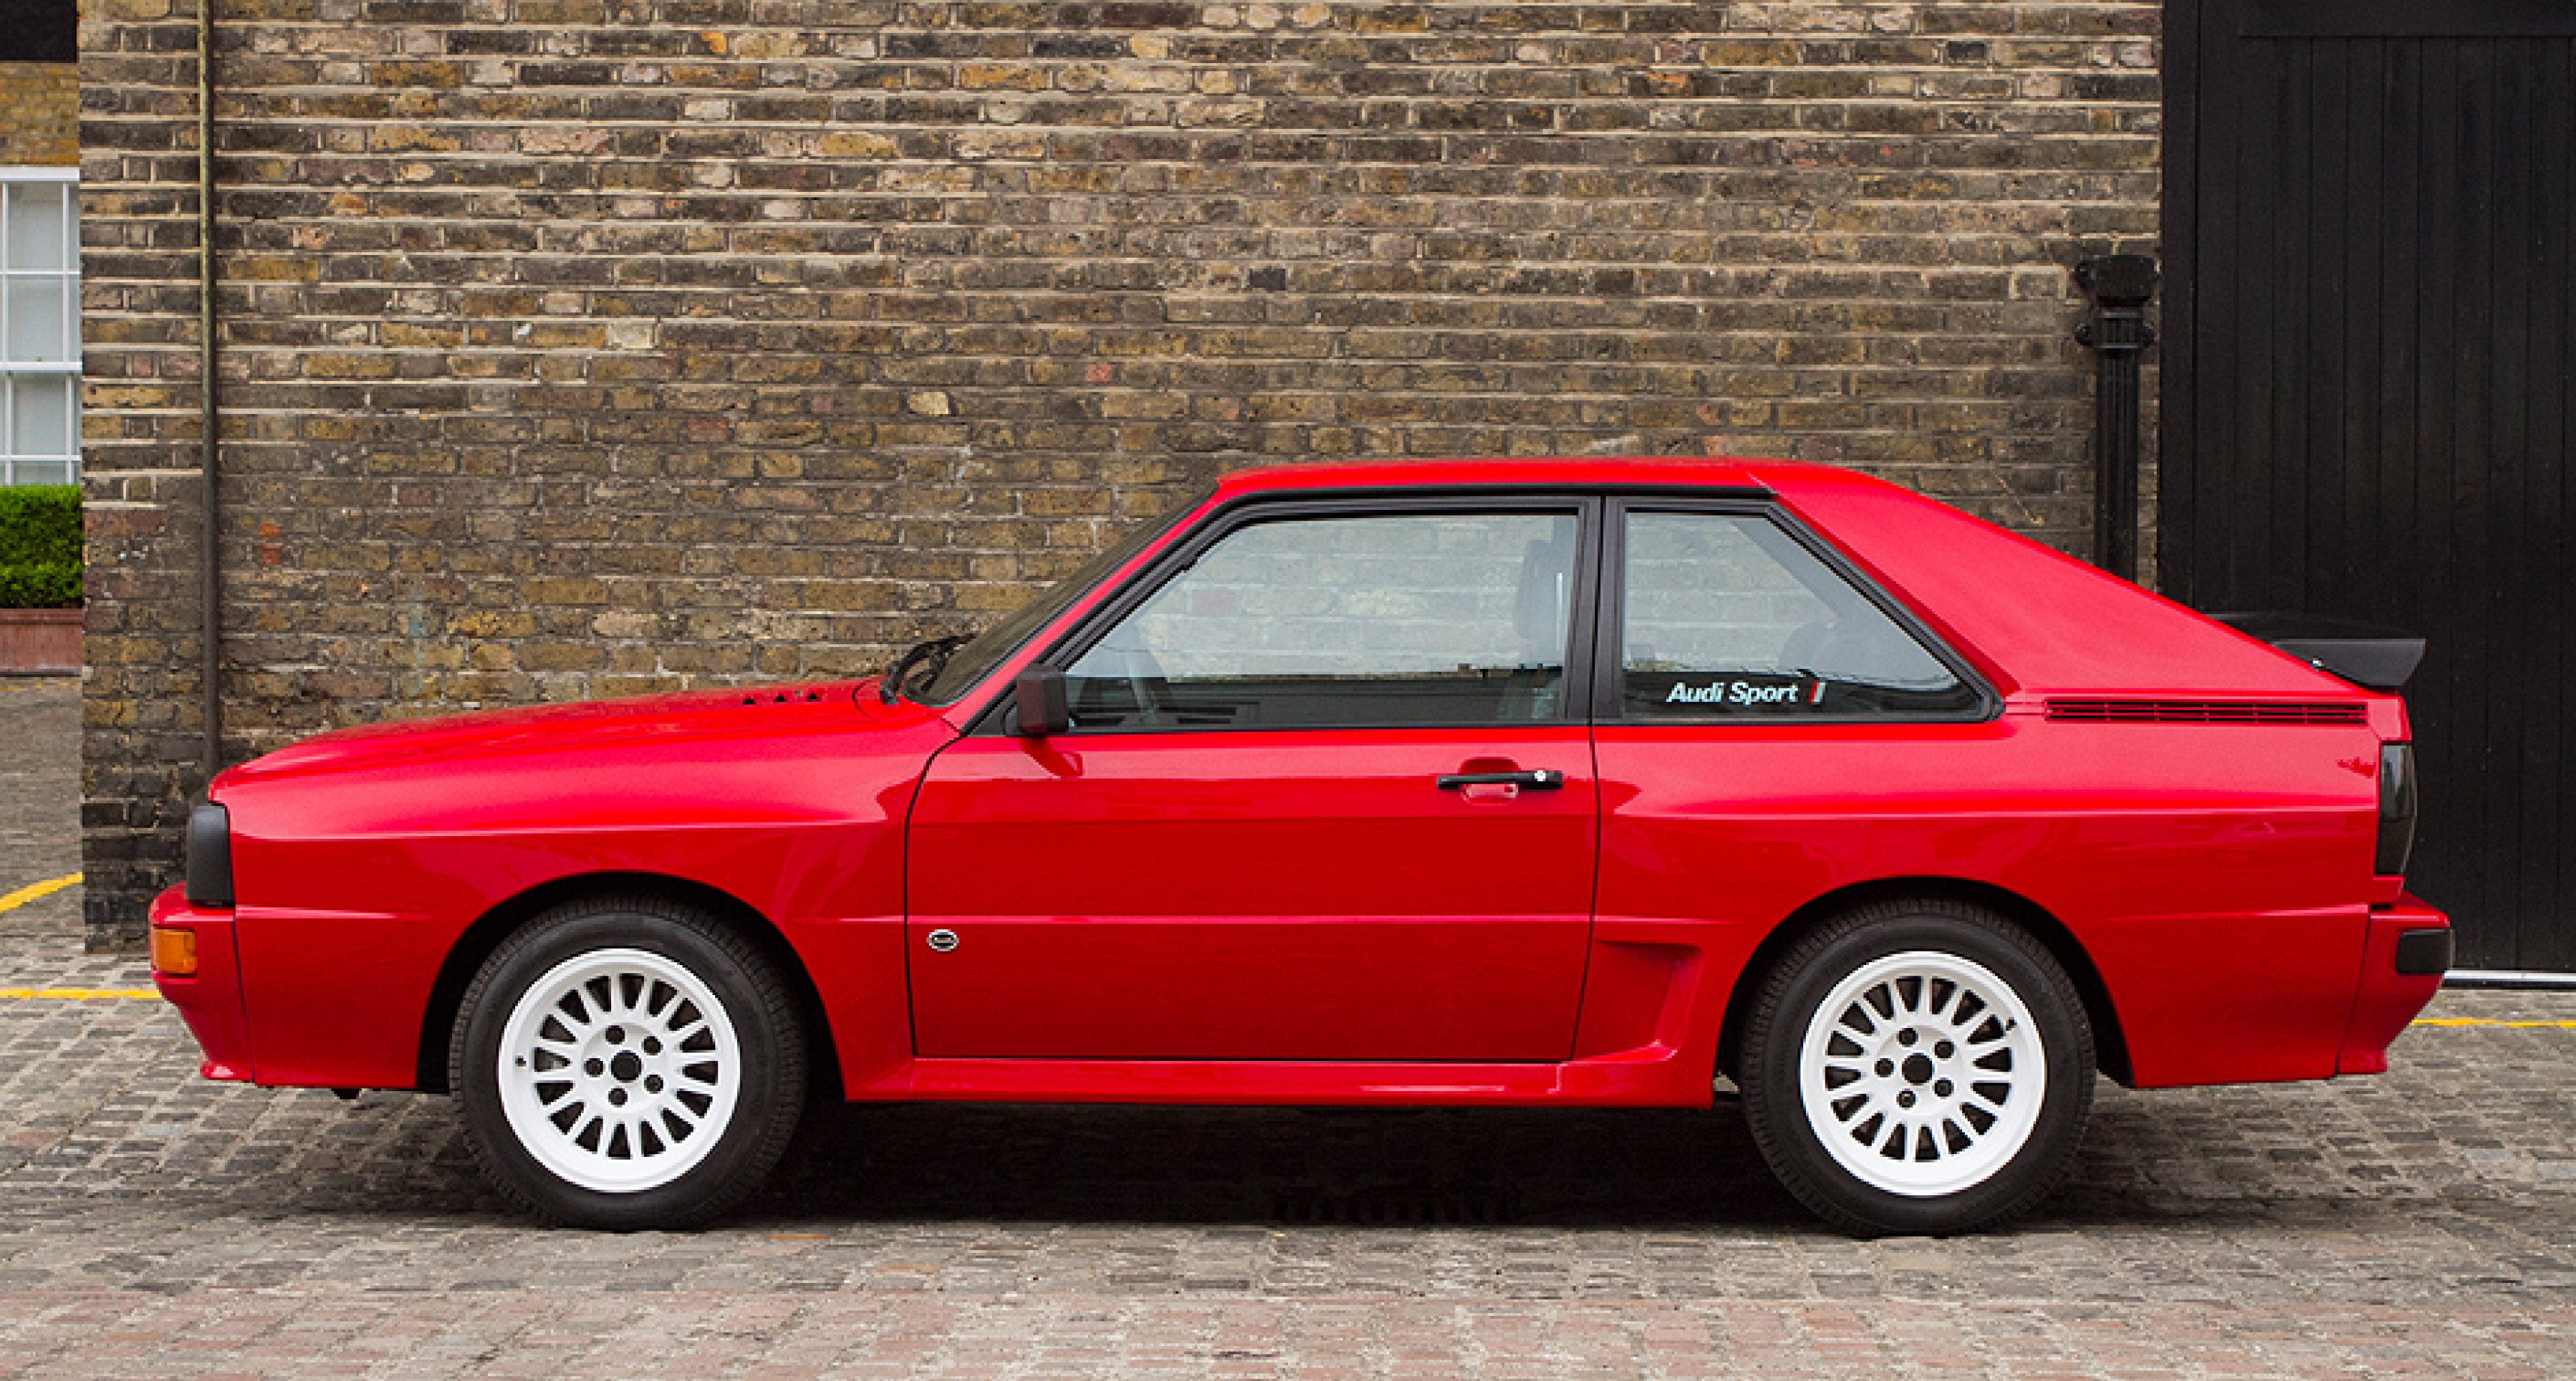 Audi Sport Quattro >> Fire Up The Sport Quattro And Let S Paint The Town Red